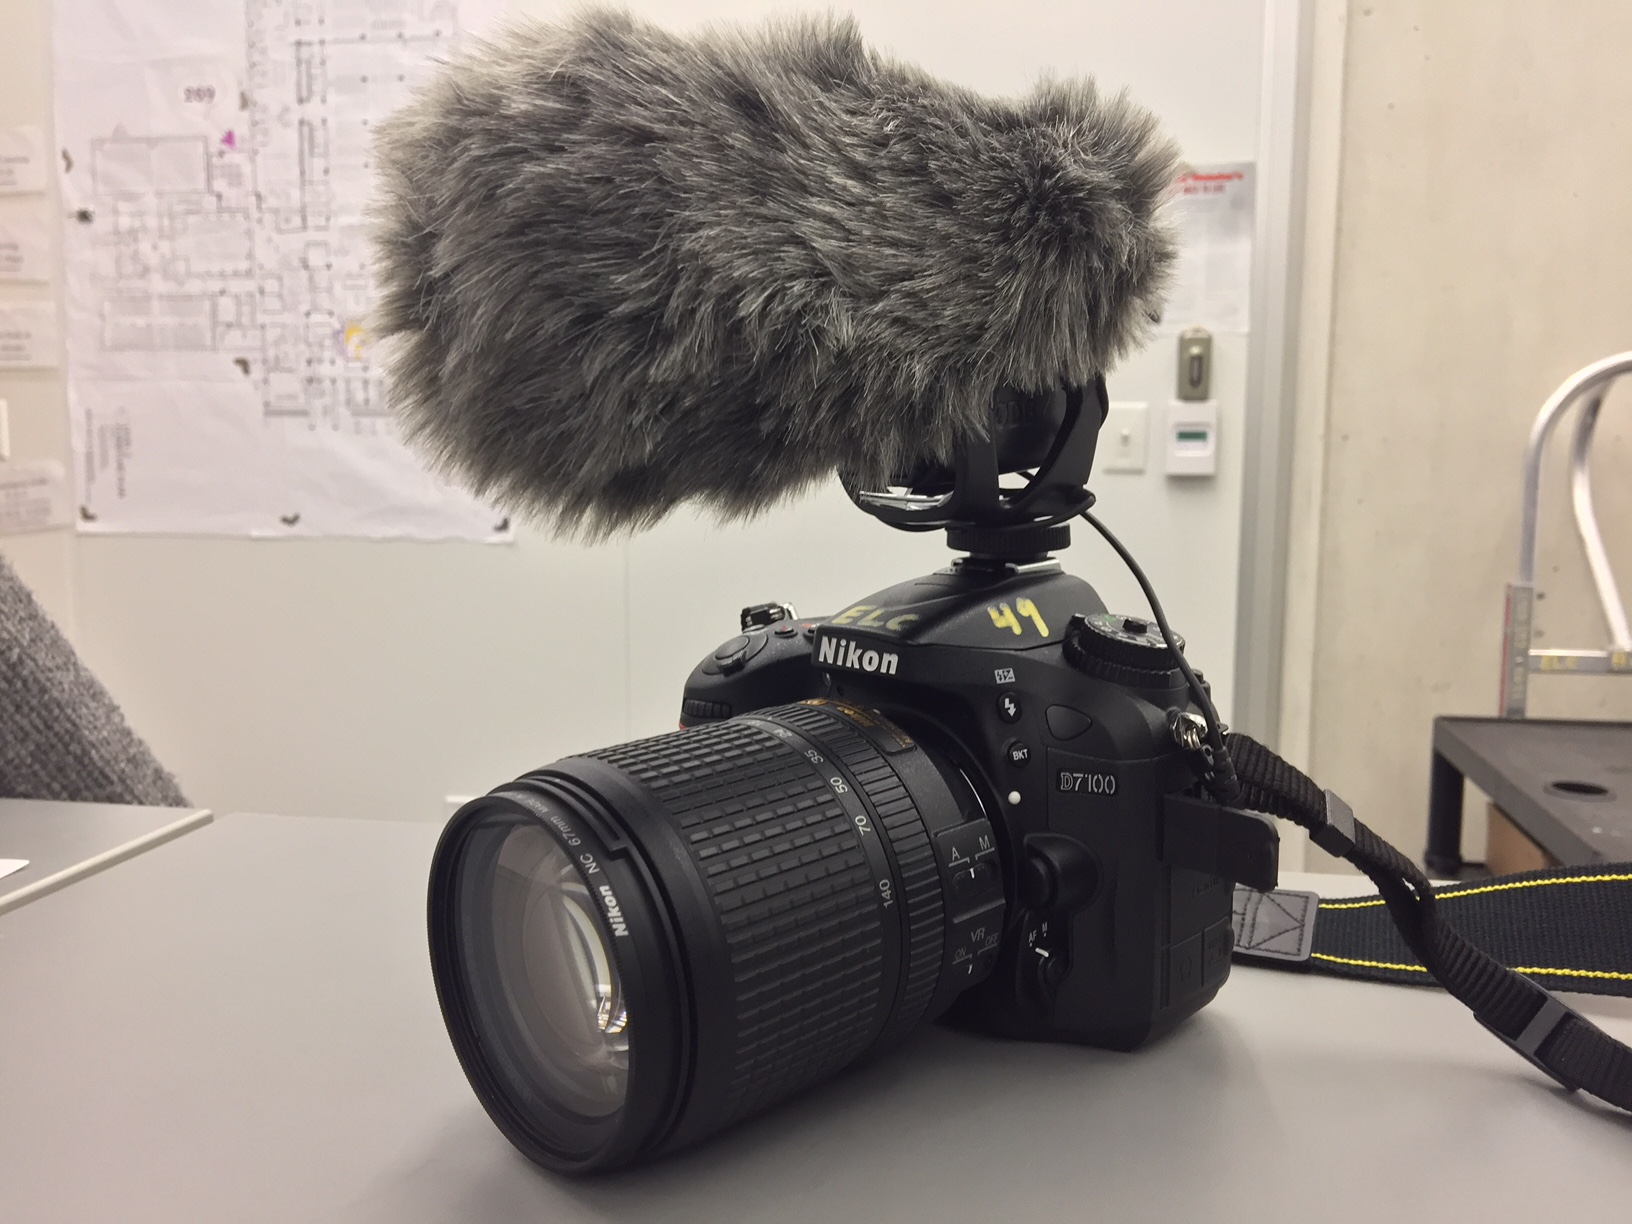 Rode DSLP Camera mic (camera pictured, but not included)